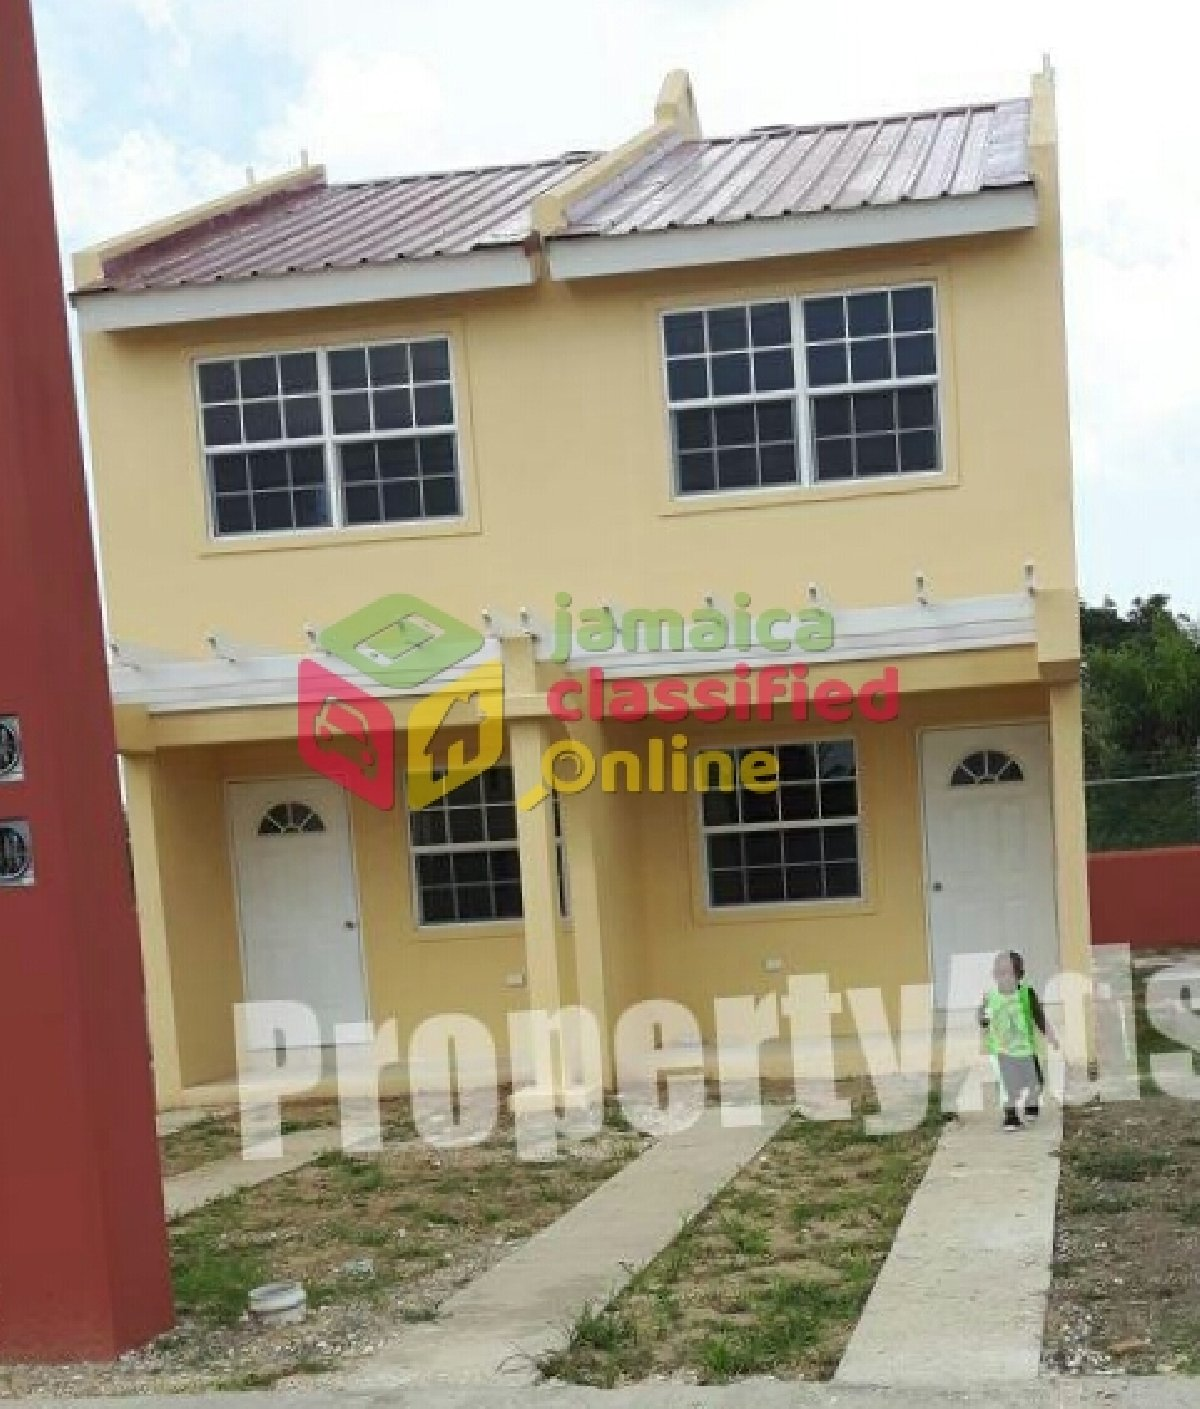 Rental Townhouses: 2 Bedroom Townhouse For Rent In Birthshire Court St